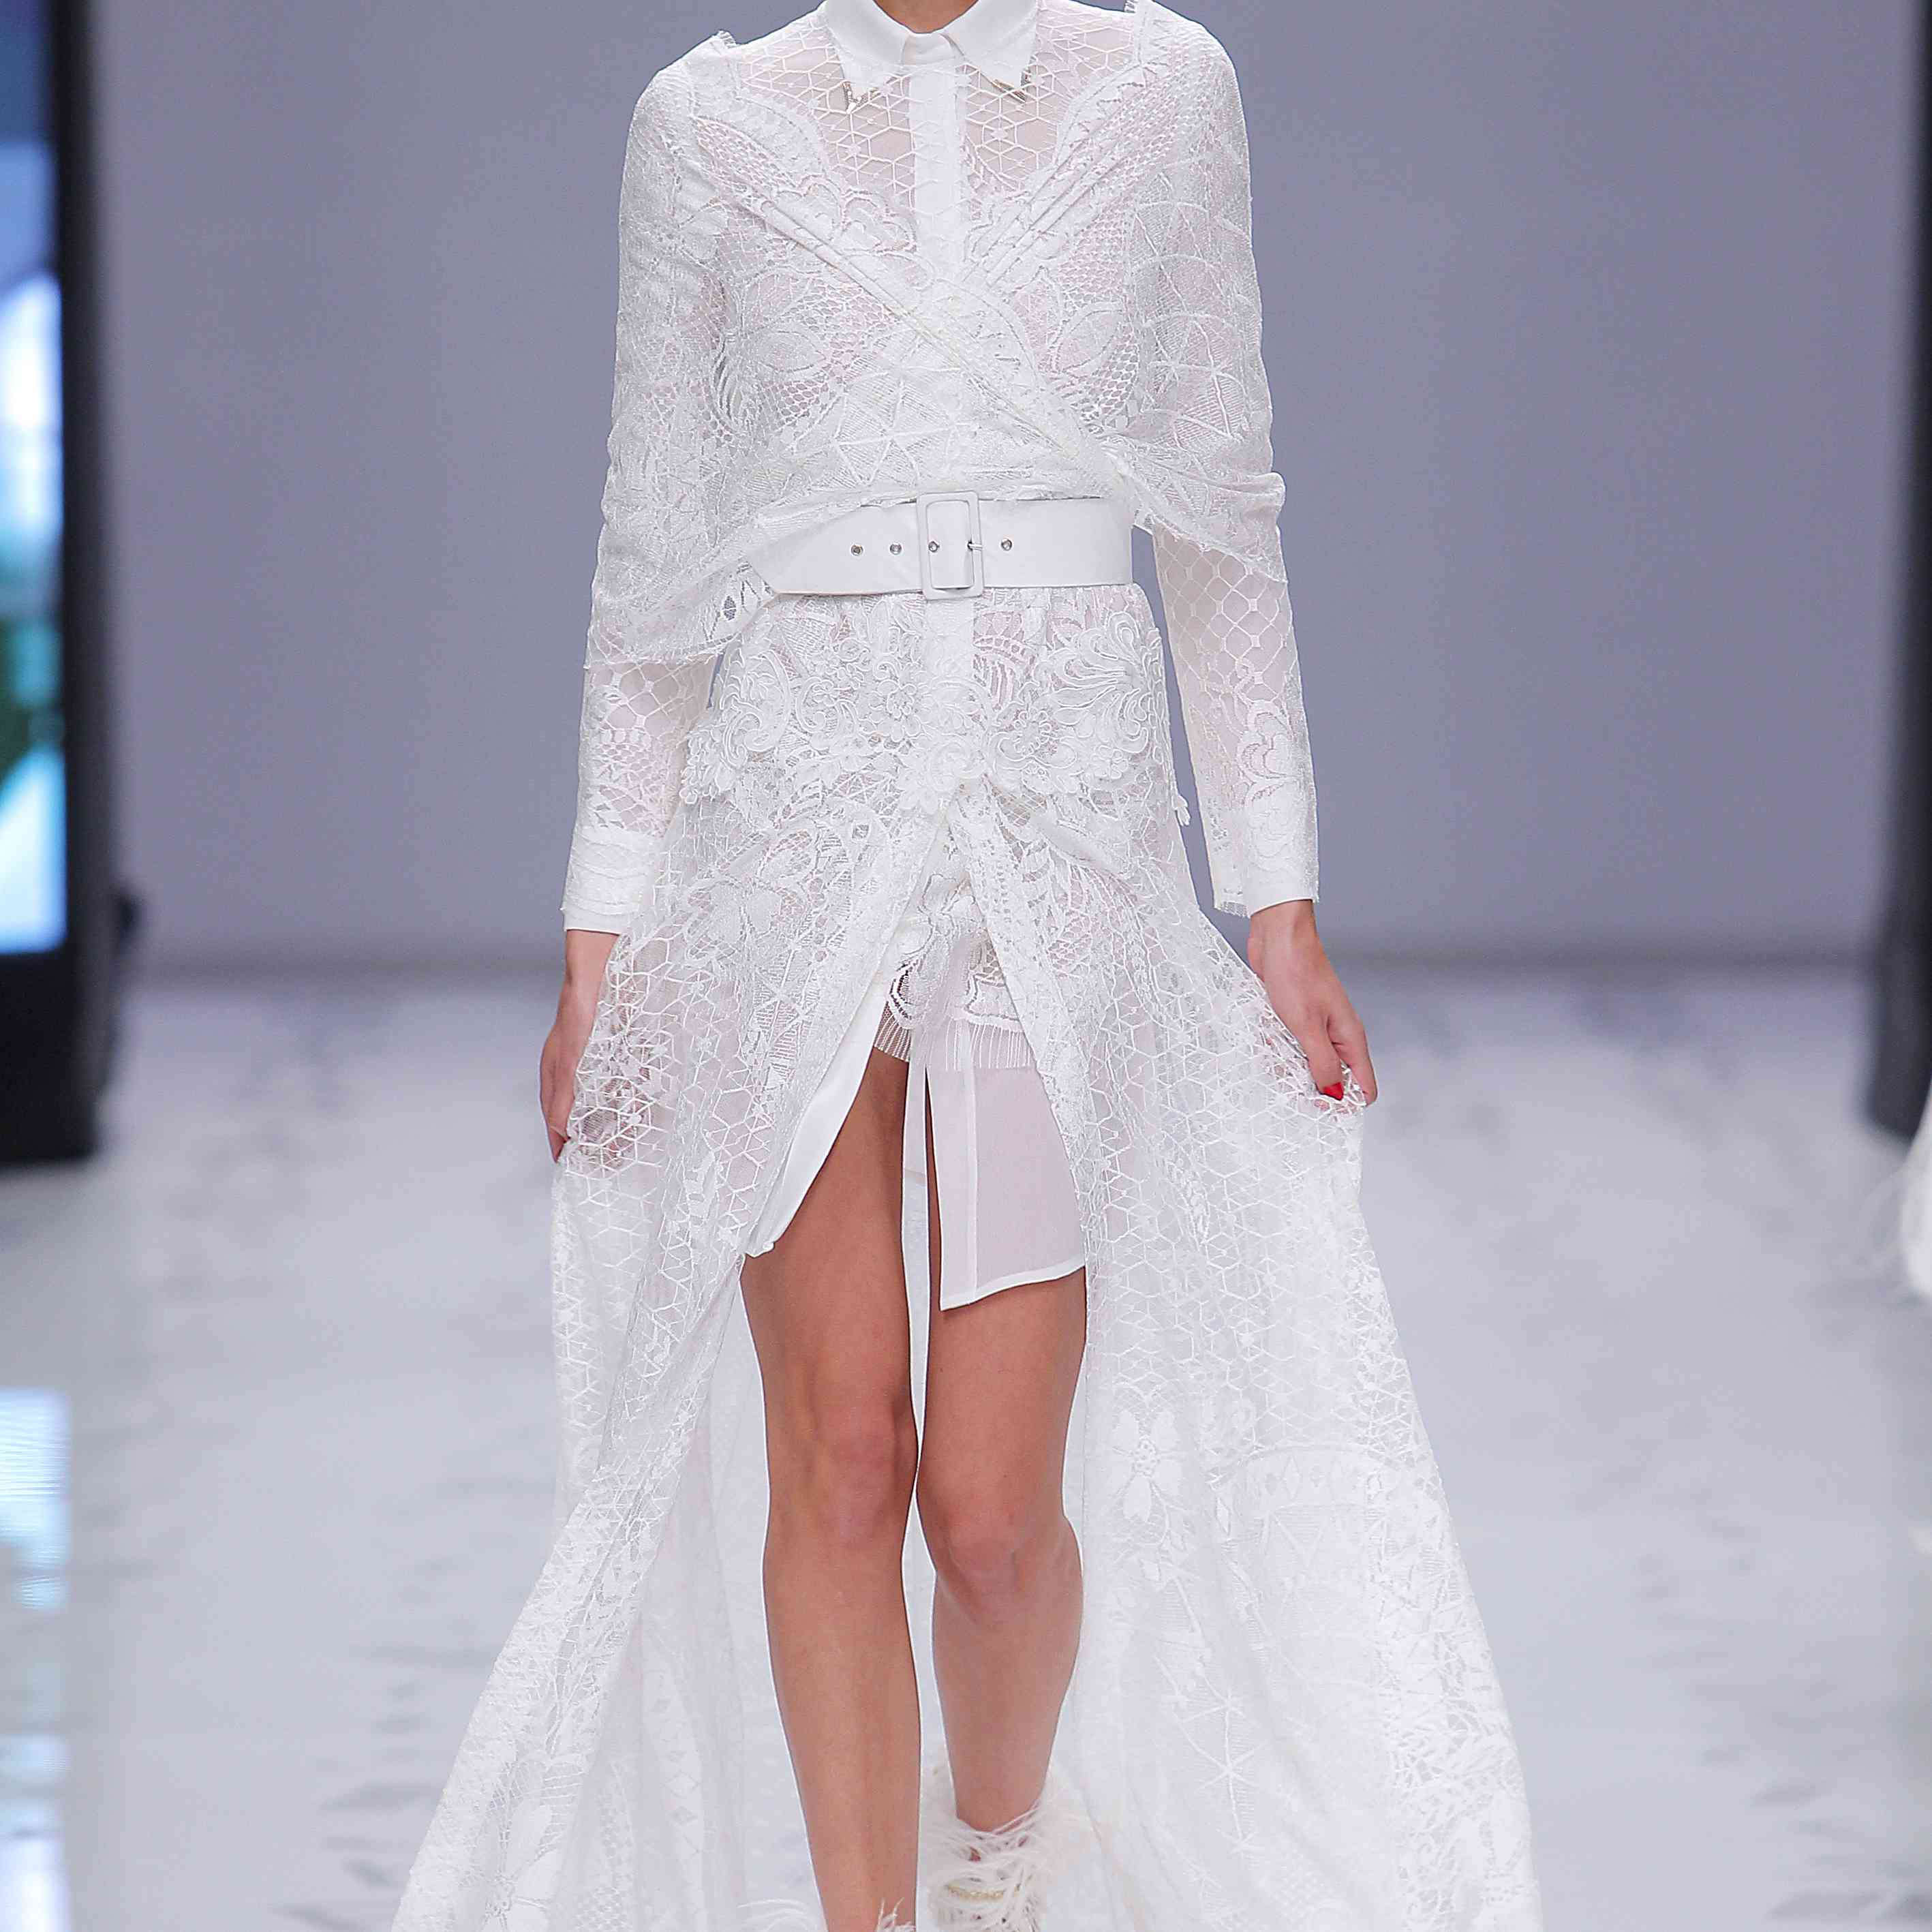 Model in allover lace long-sleeve dress with high center front slit and a collared neckline